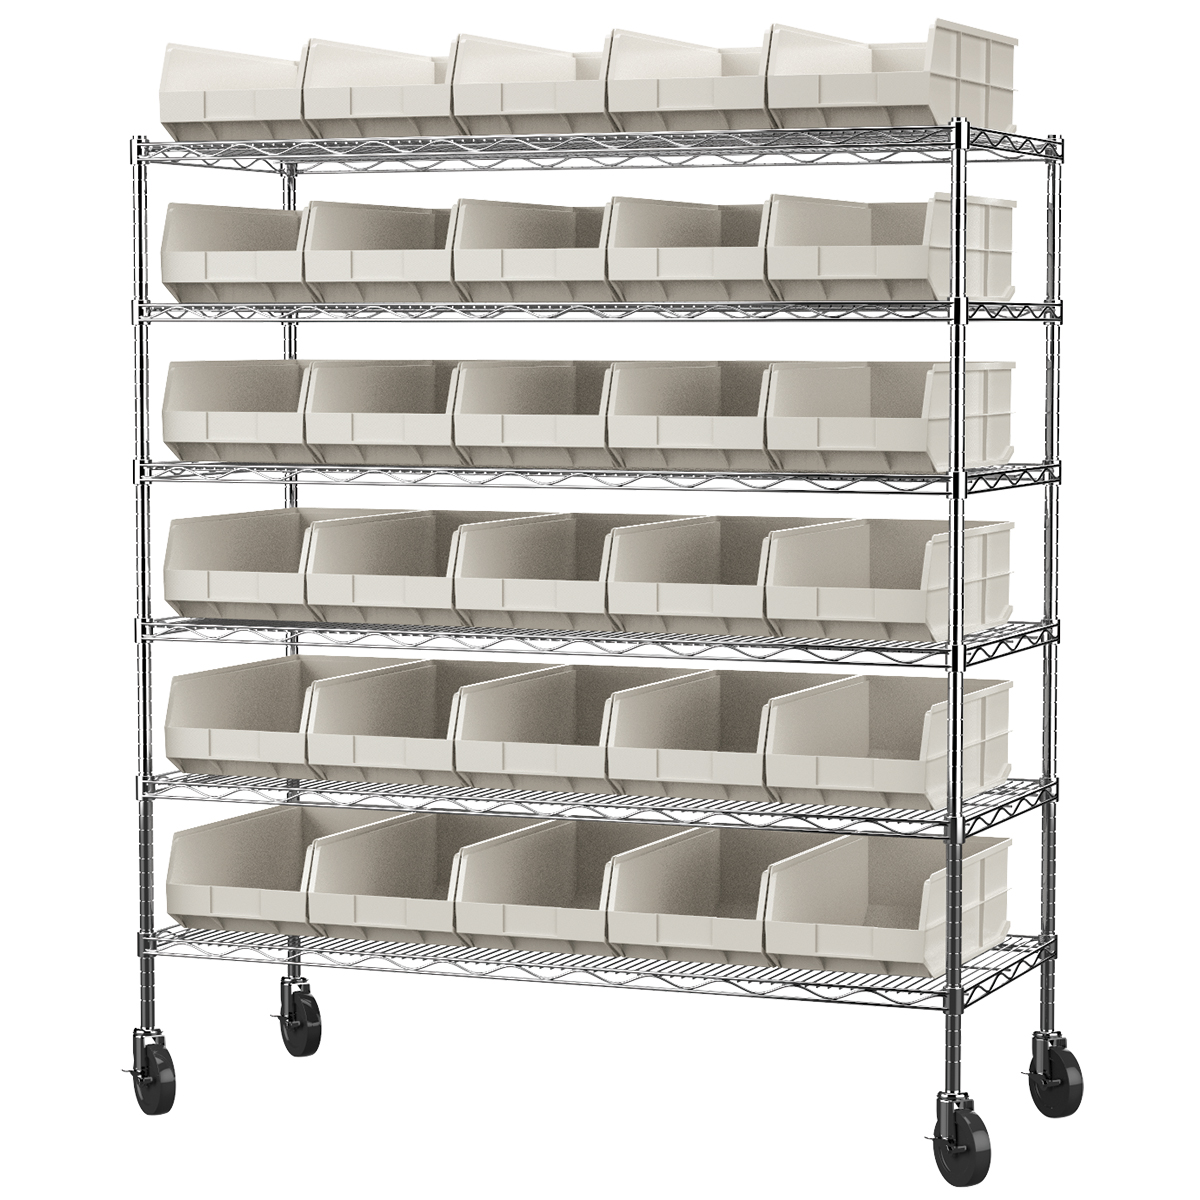 Mobile Wire Shelving Kit, 24x60x68, 30 Bins, Chrome/Stone (AWS2460M30358).  This item sold in carton quantities of 1.